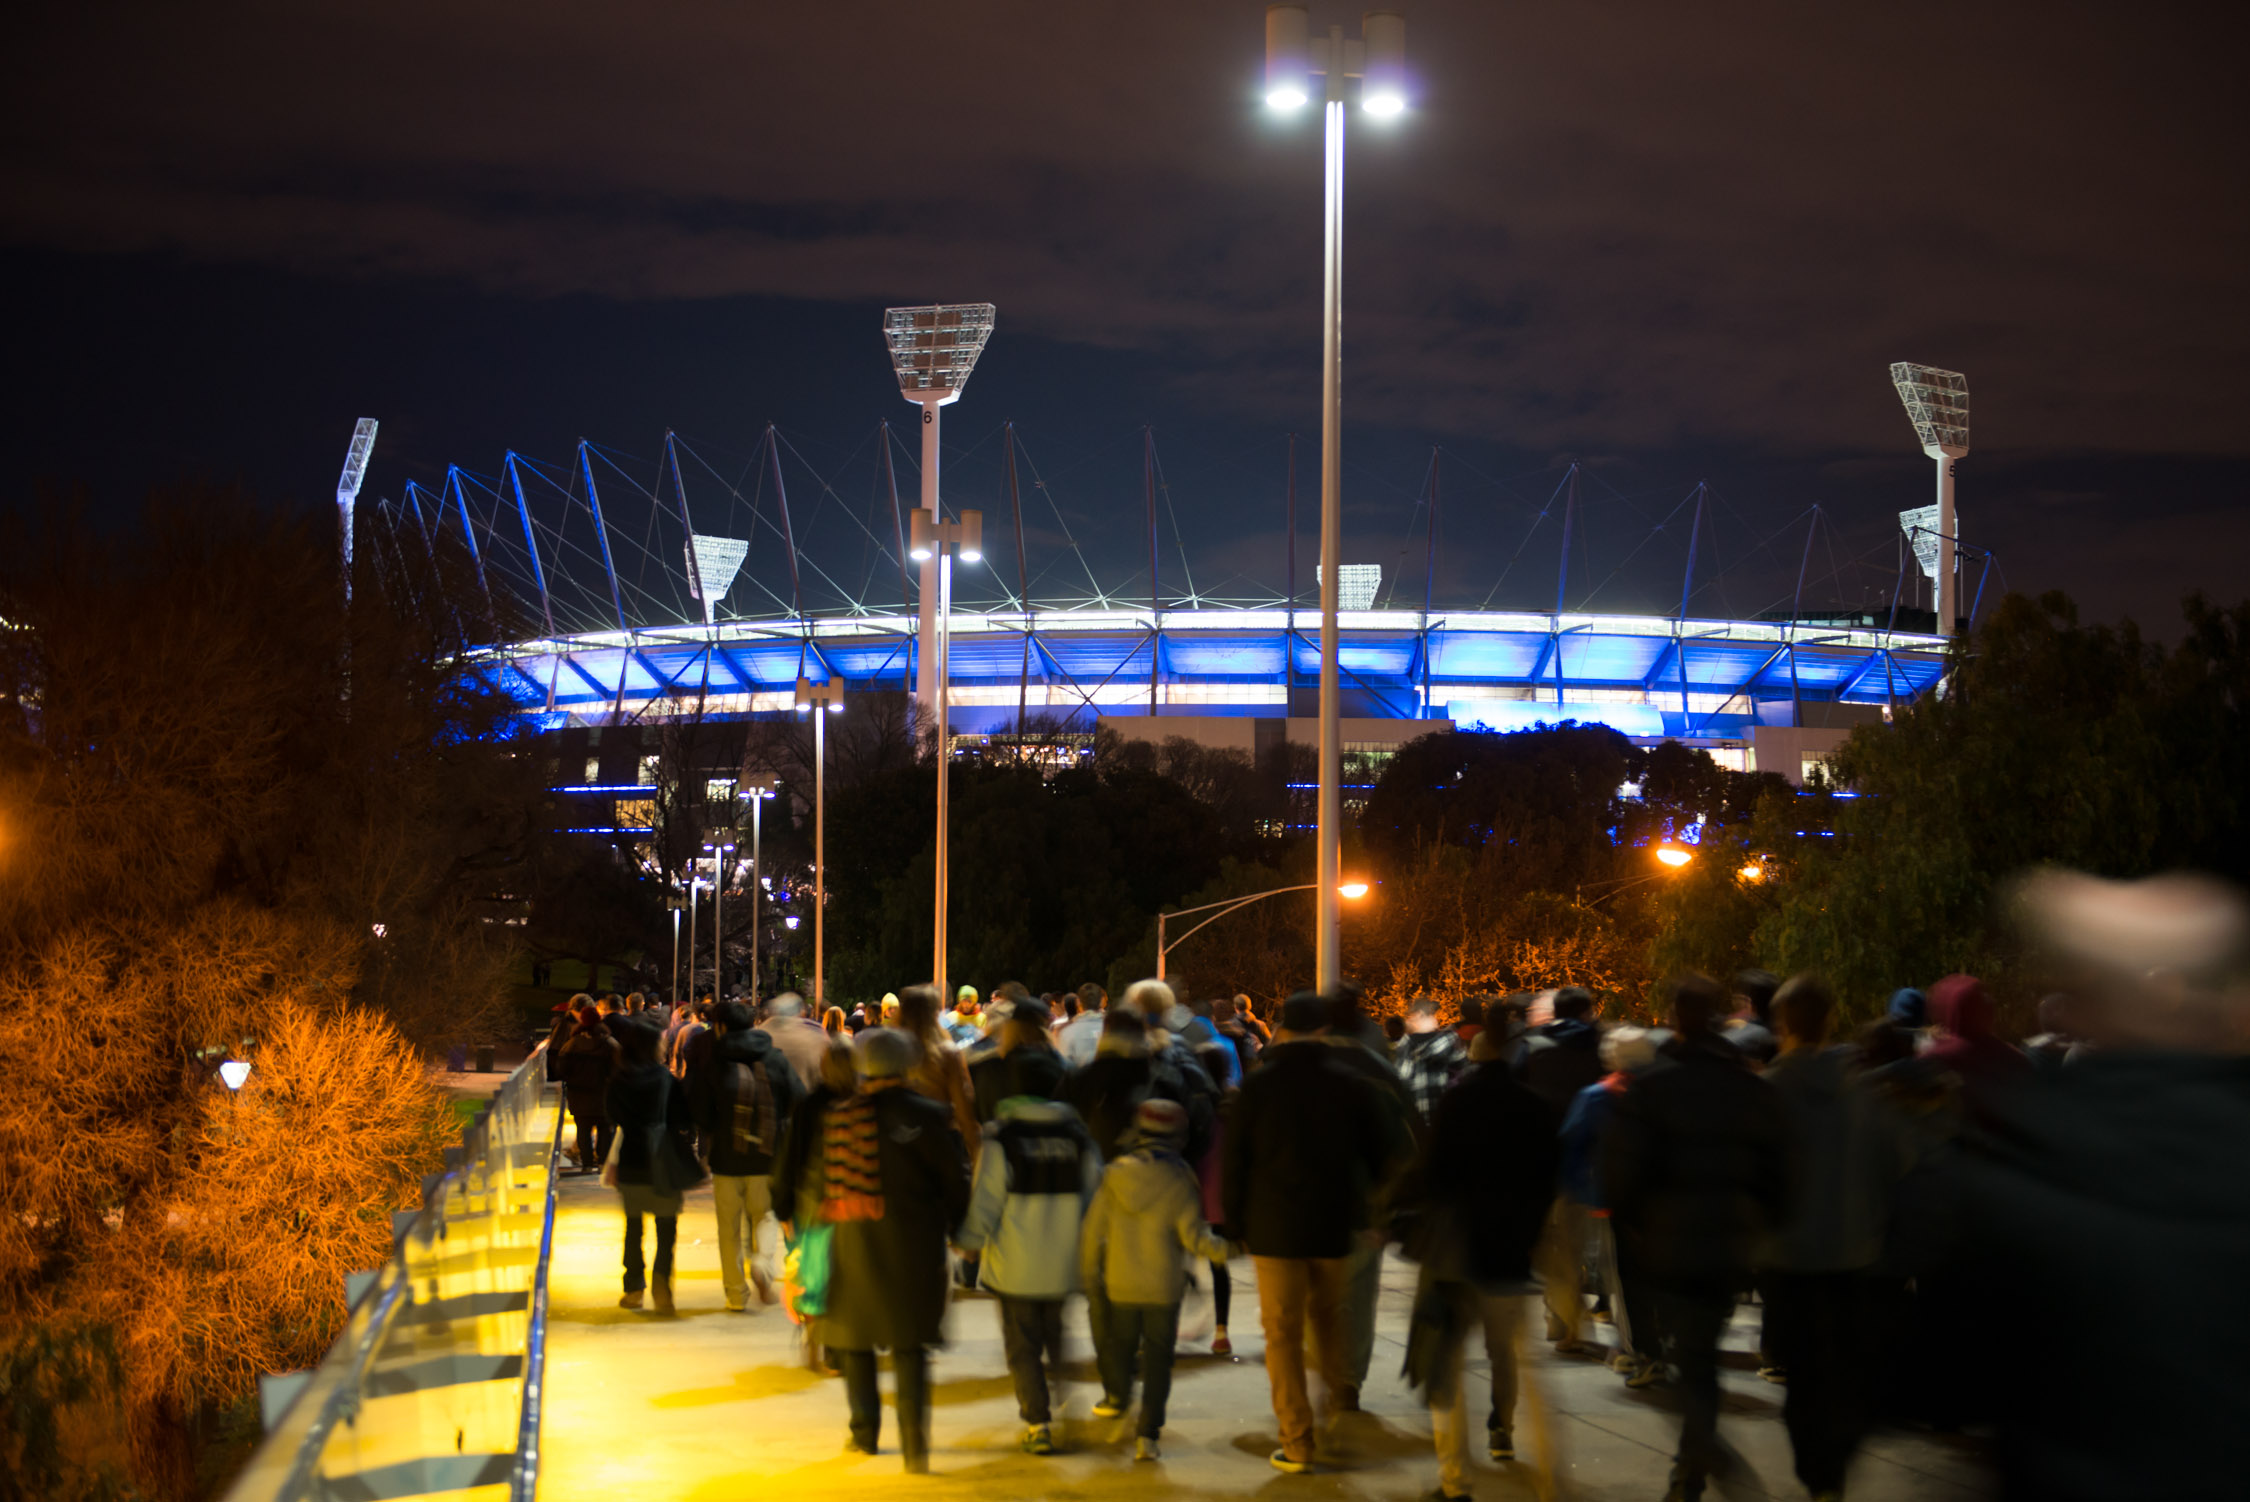 Lighting the way: the MCG has cut costs and carbon by converting its lighting to LEDs.